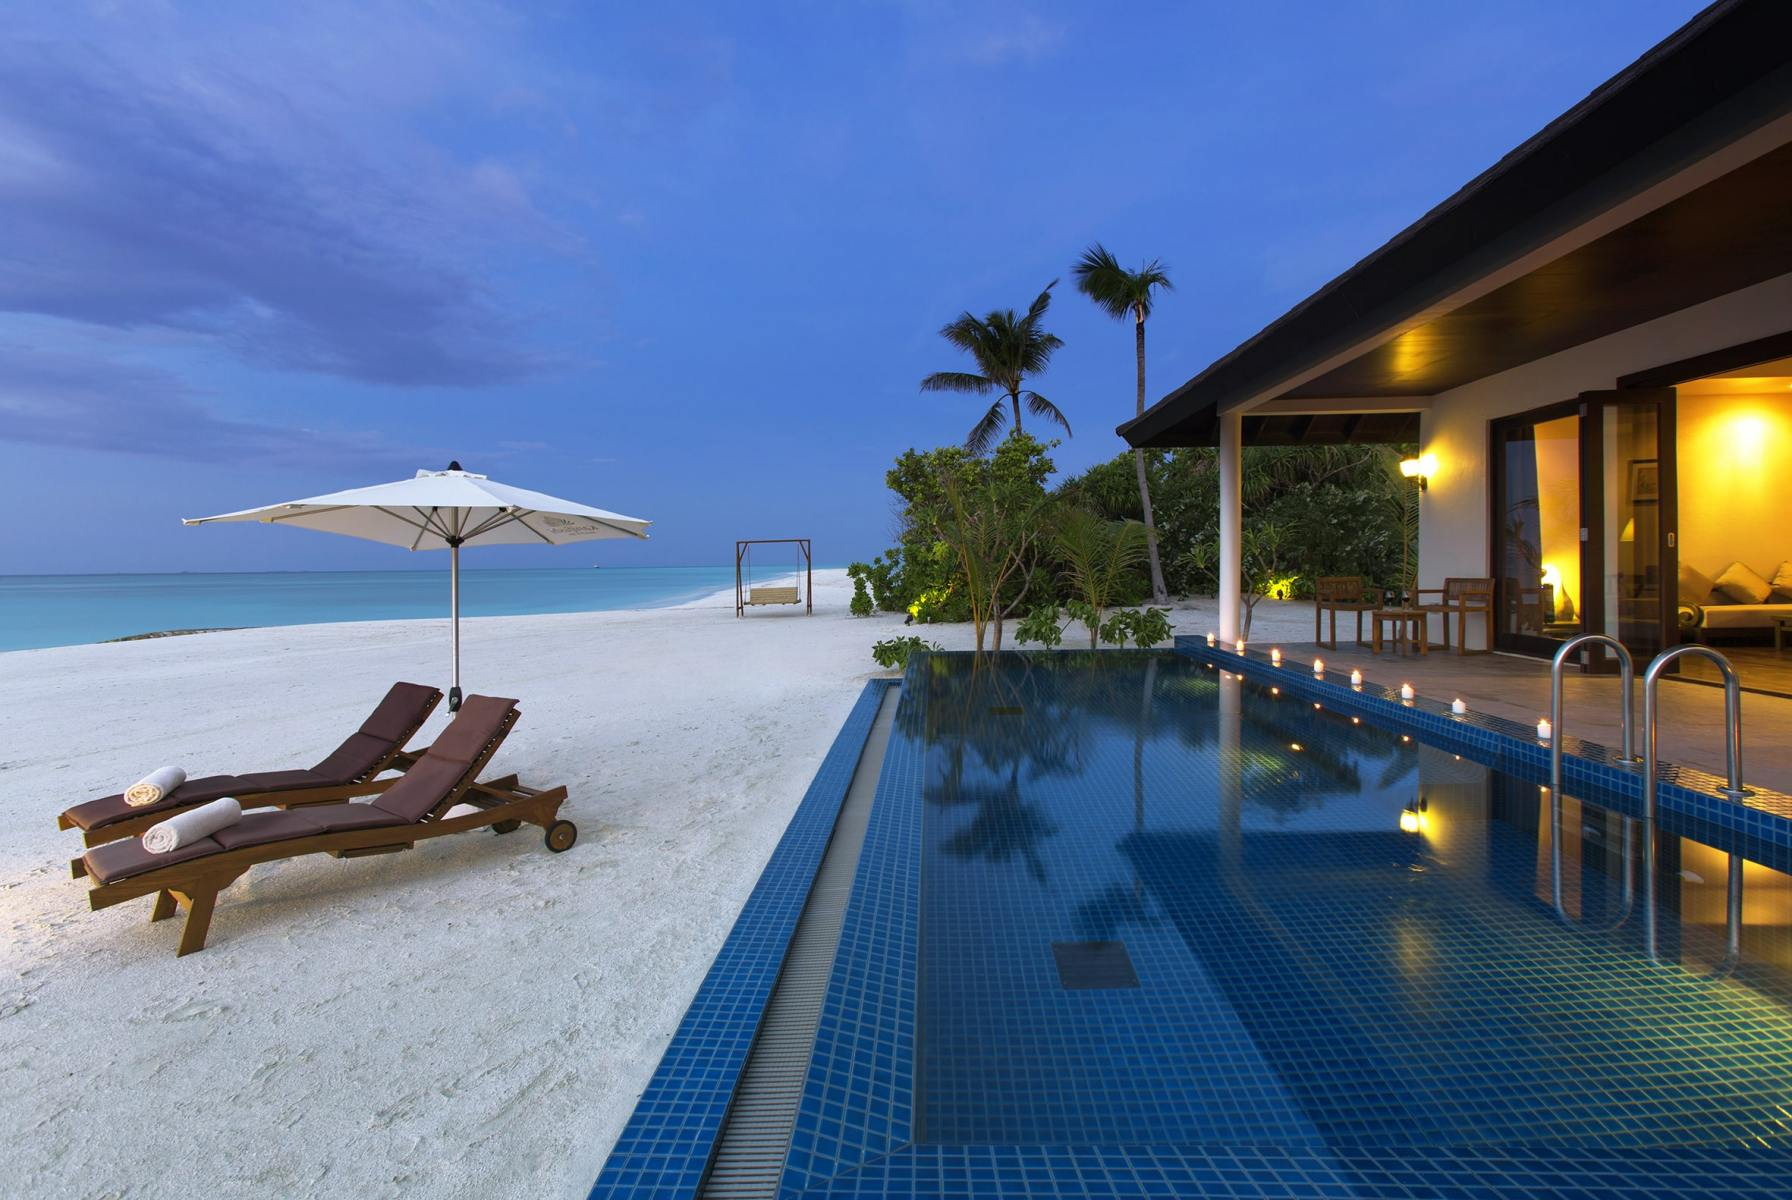 SUNSET-POOL-VILLA-AT-DUSK-WITH-SWING-AND-SANDBANK-IN-BACKGROUND-min